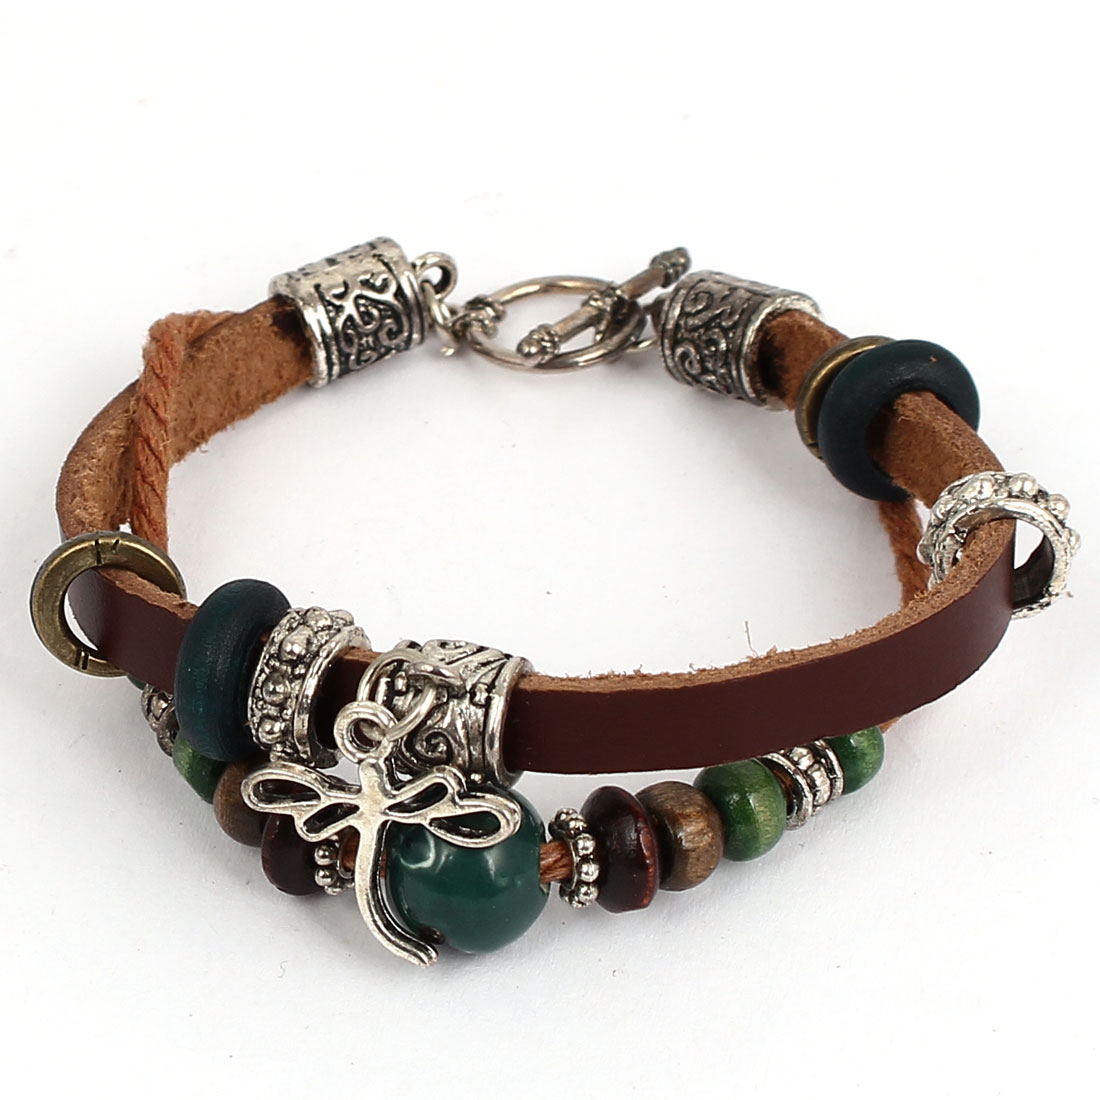 Women Retro Style Metal Dragonfly Pendant Interlocking Faux Leather Wrist Bracelet